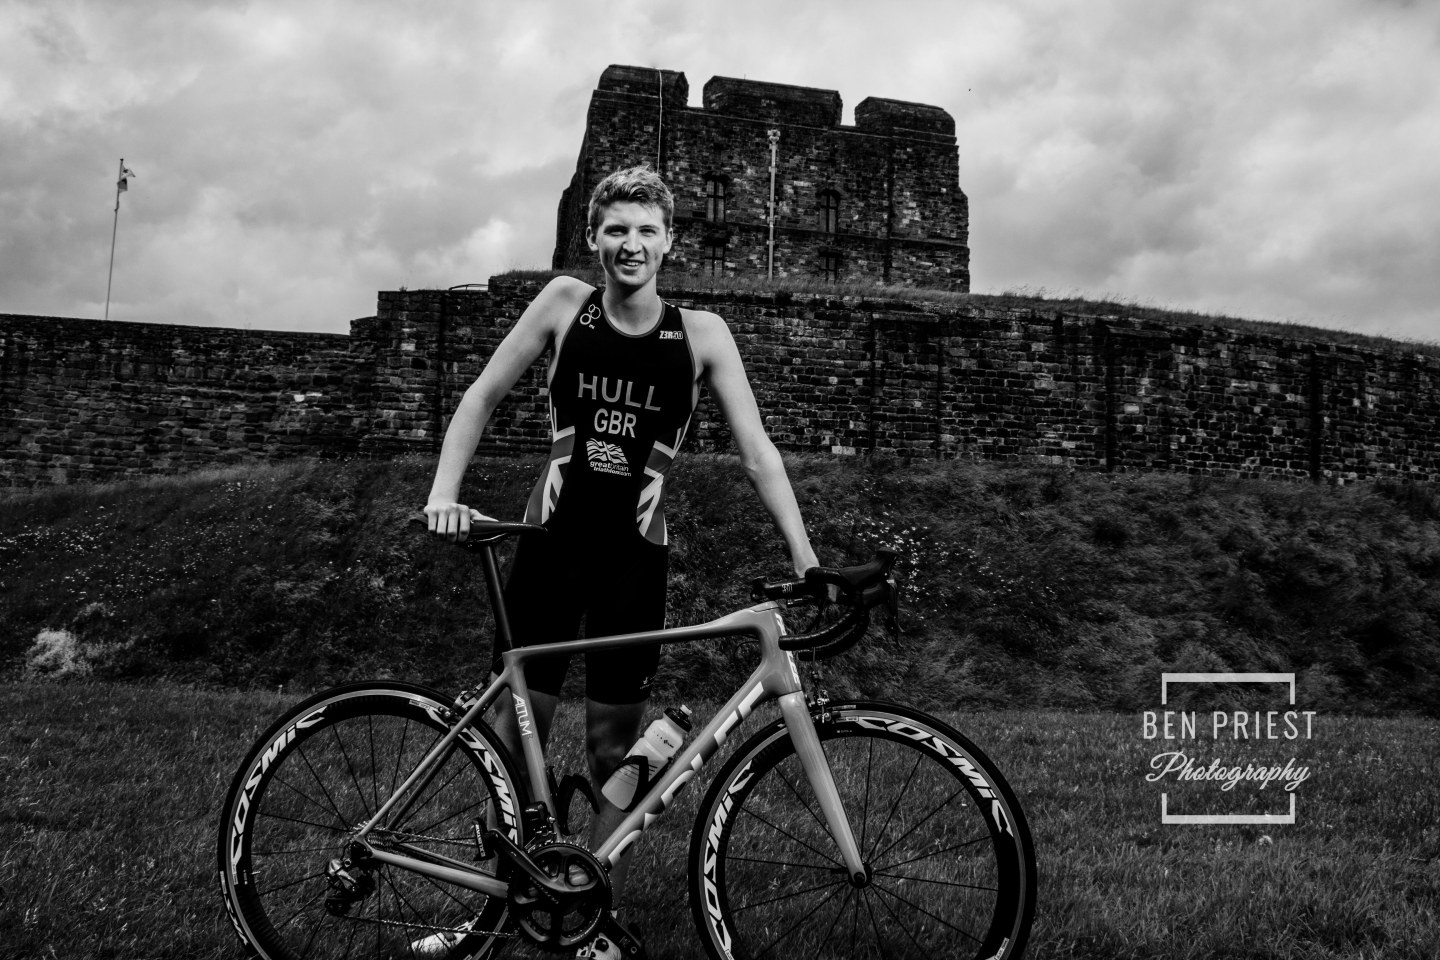 Team GB Triathlete – Jordan Hull – Cumbrian Ambassador for the World Health Innovation Summit no.3